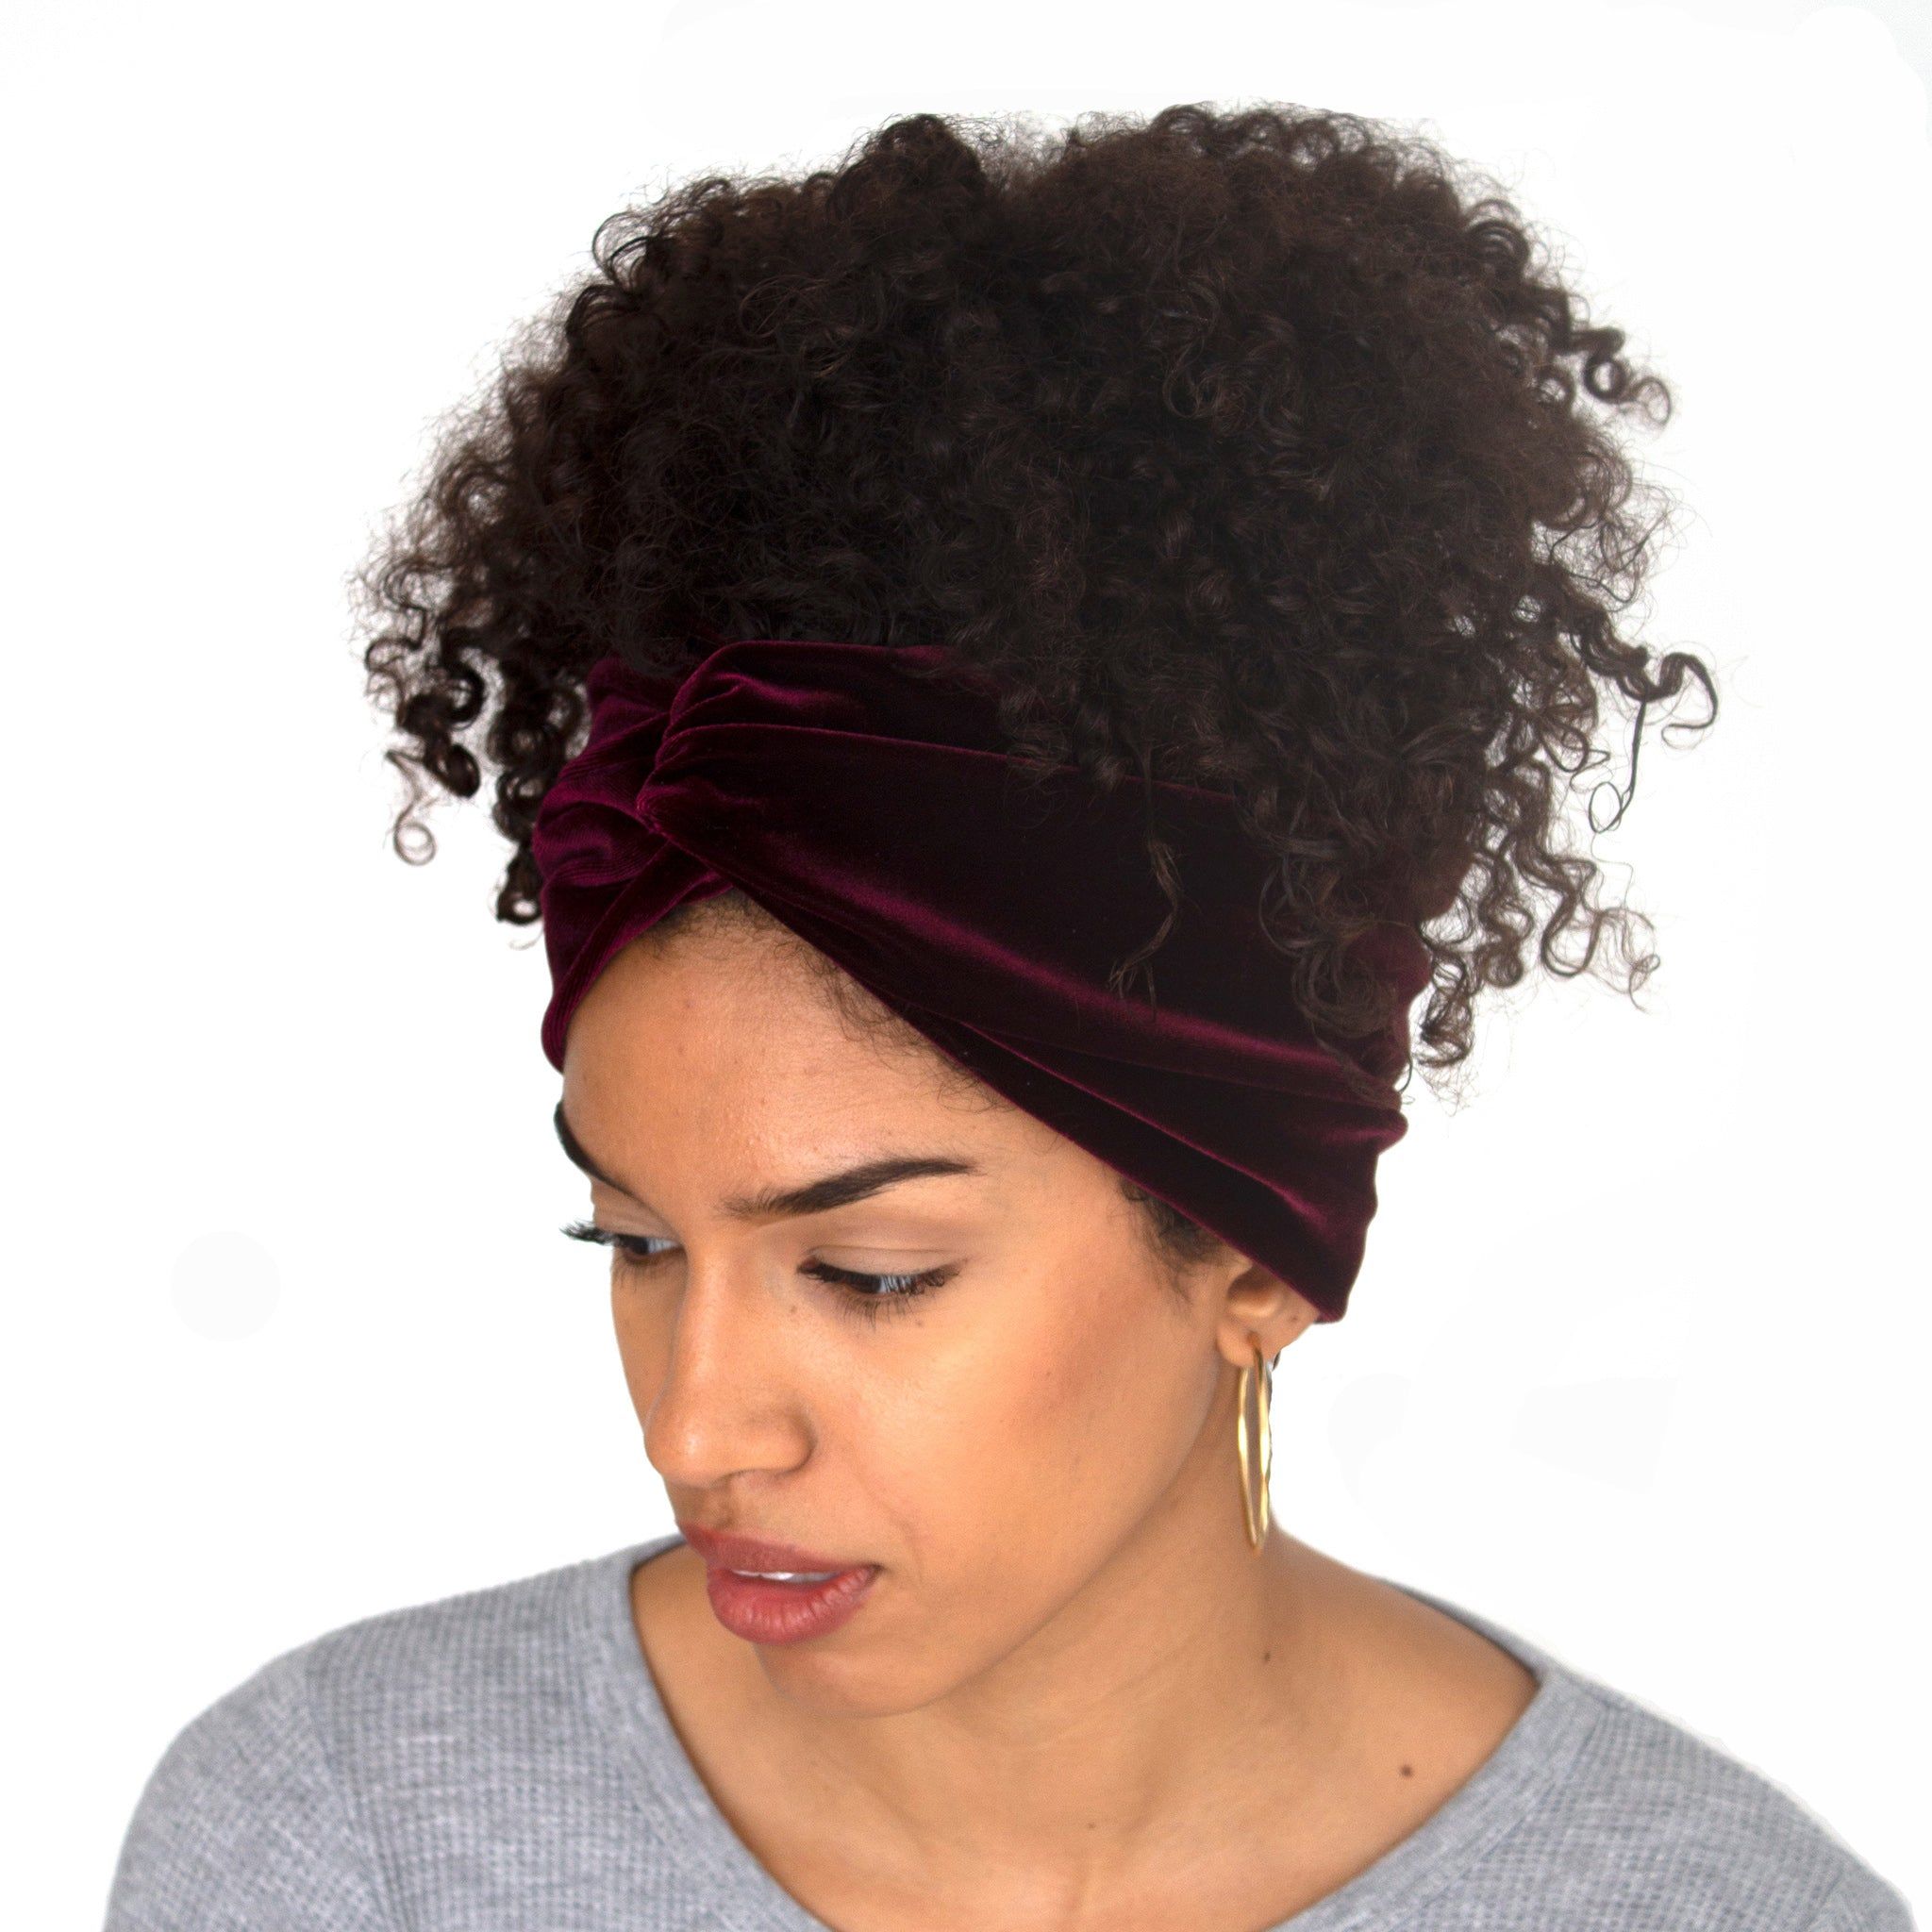 Stretch velvet headband in Sangria (burgundy)